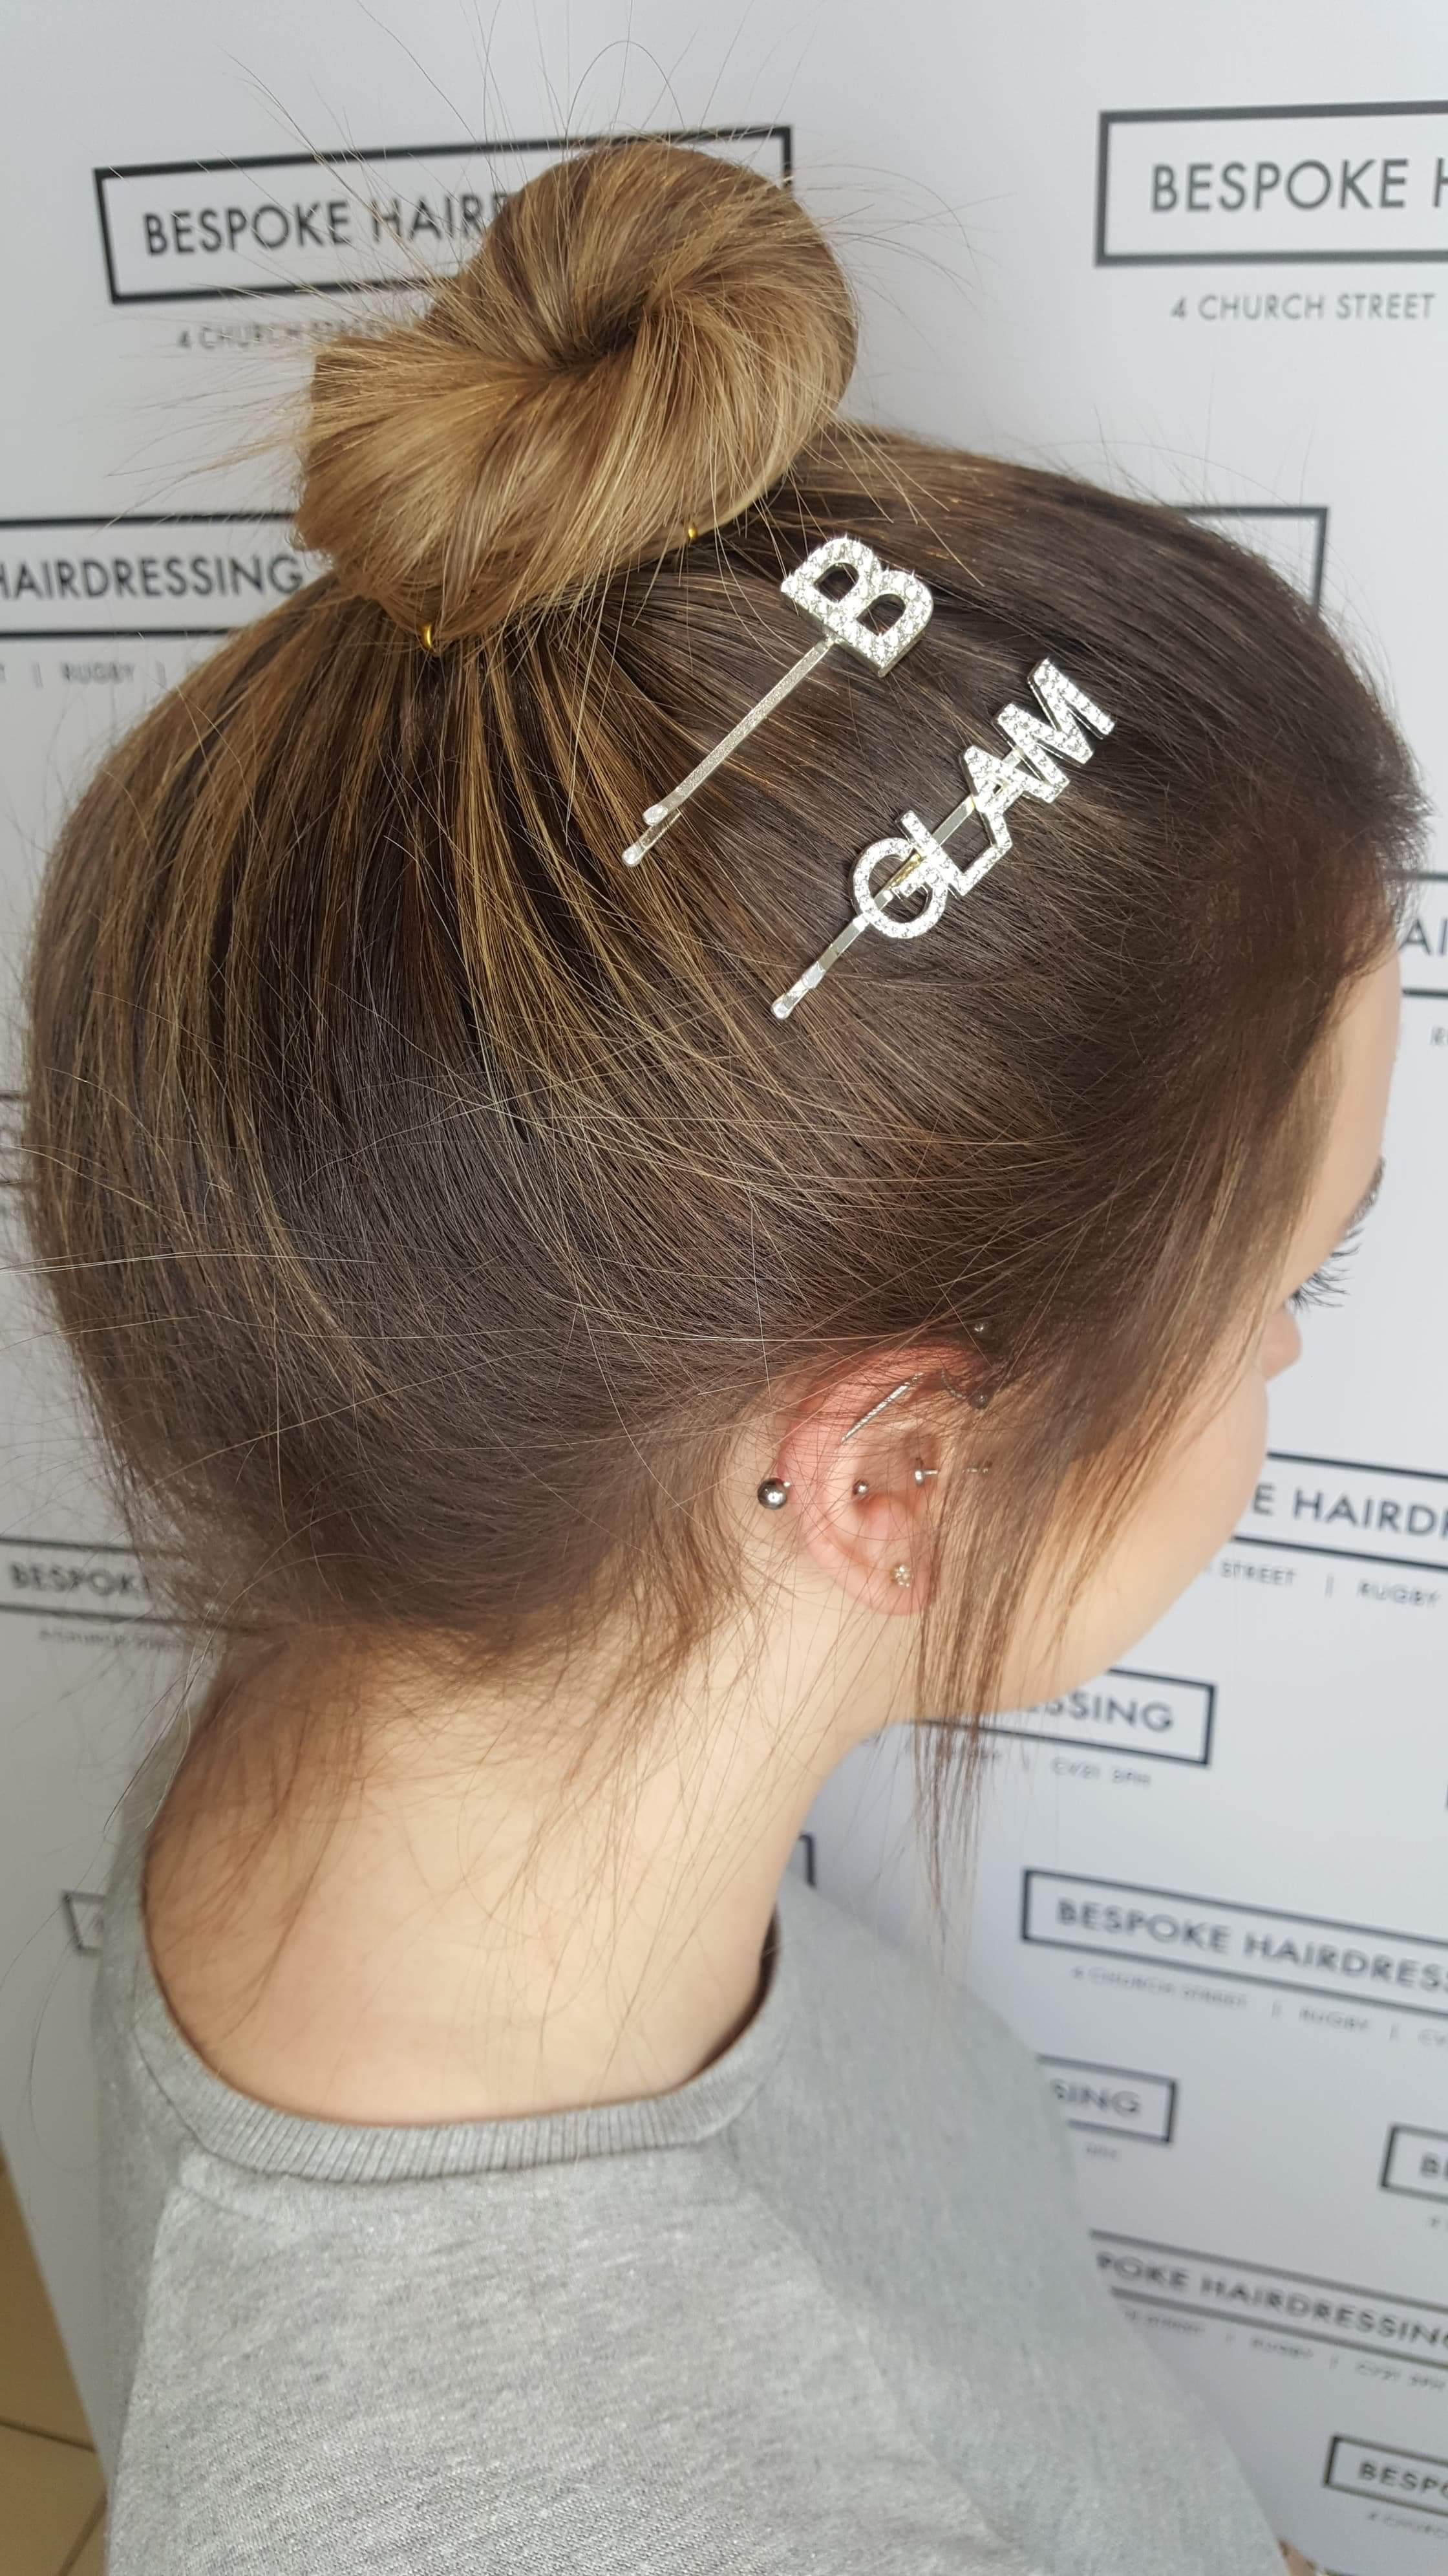 Bespoke Hairdressing Rugby sleek top knot